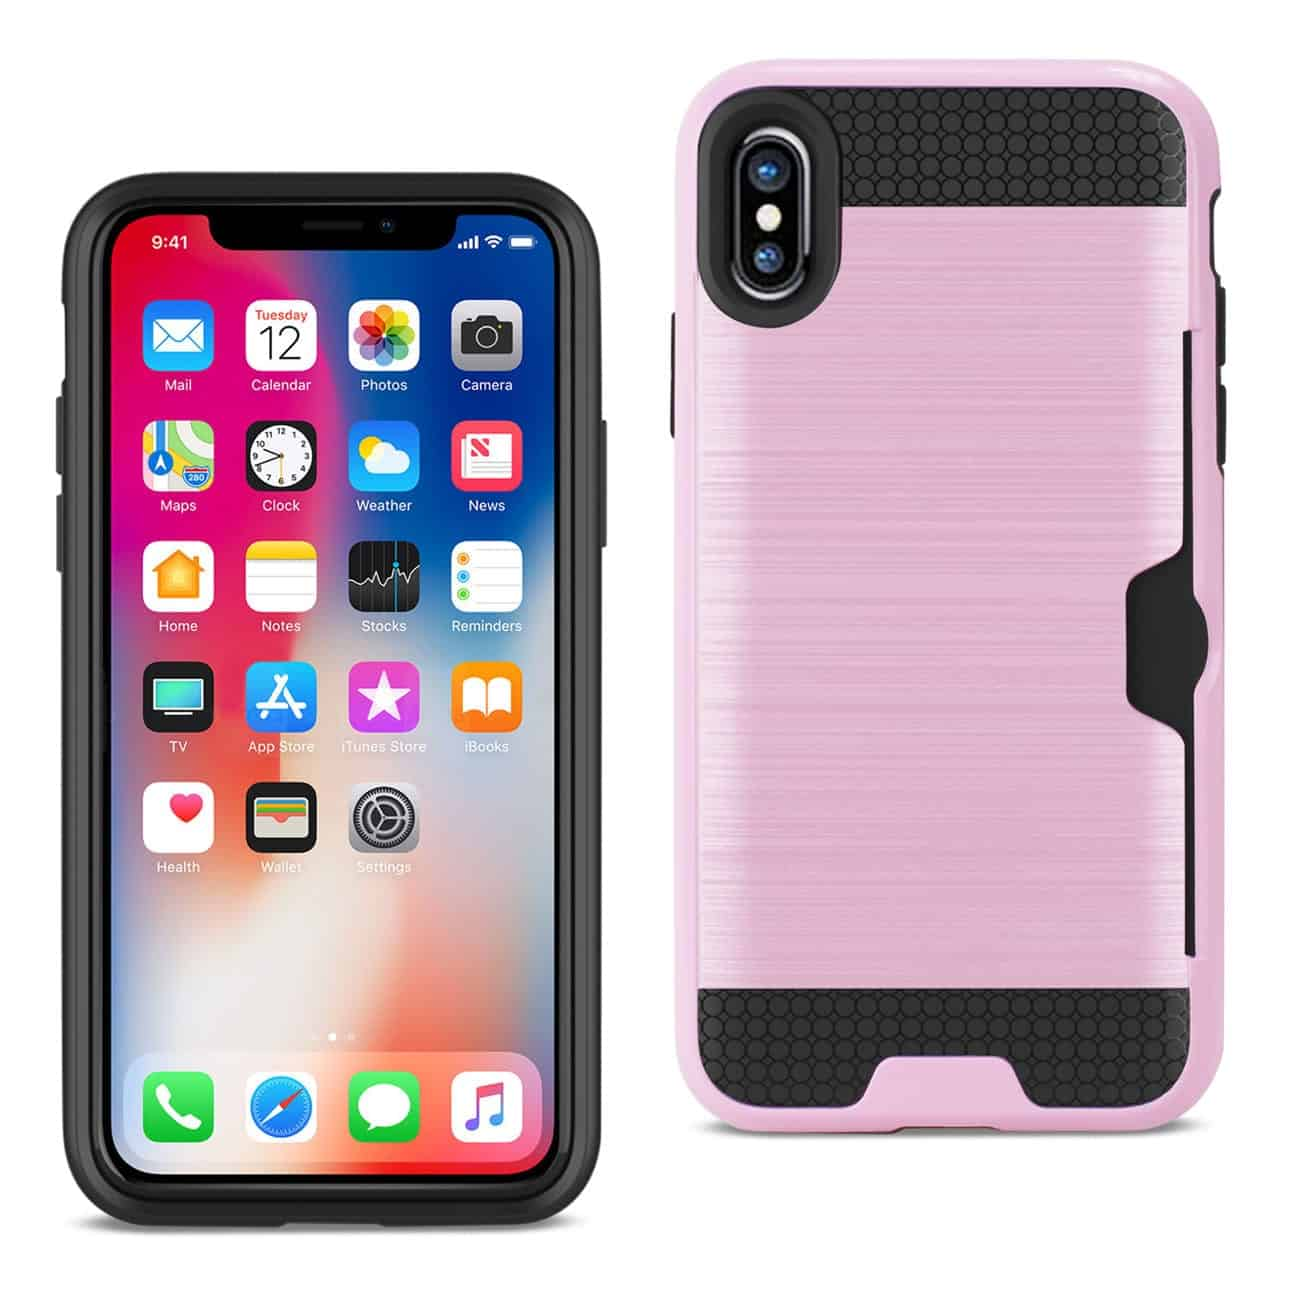 IPHONE X SLIM ARMOR HYBRID CASE WITH CARD HOLDER IN PINK